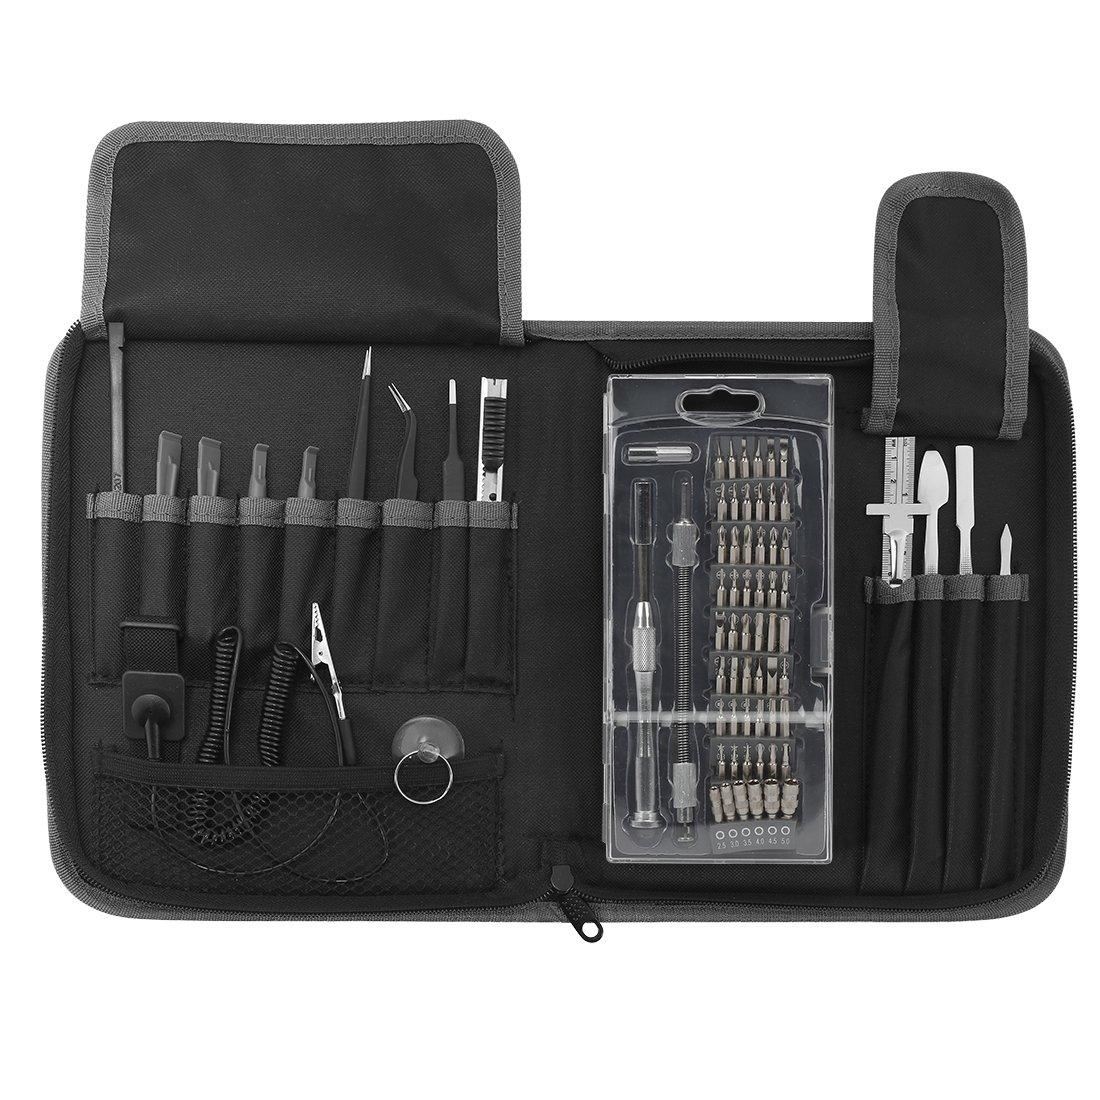 Basics Electronics Tool Kit GS201509ETK